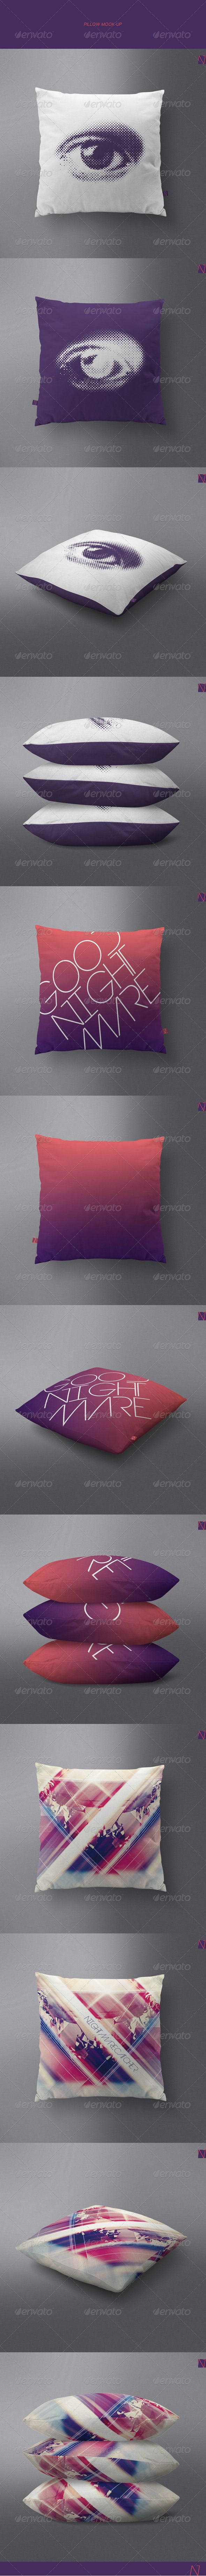 best images about portfolio resume resources pillow mock up middot pillow mockmiscellaneous productresume resourcesportfolio